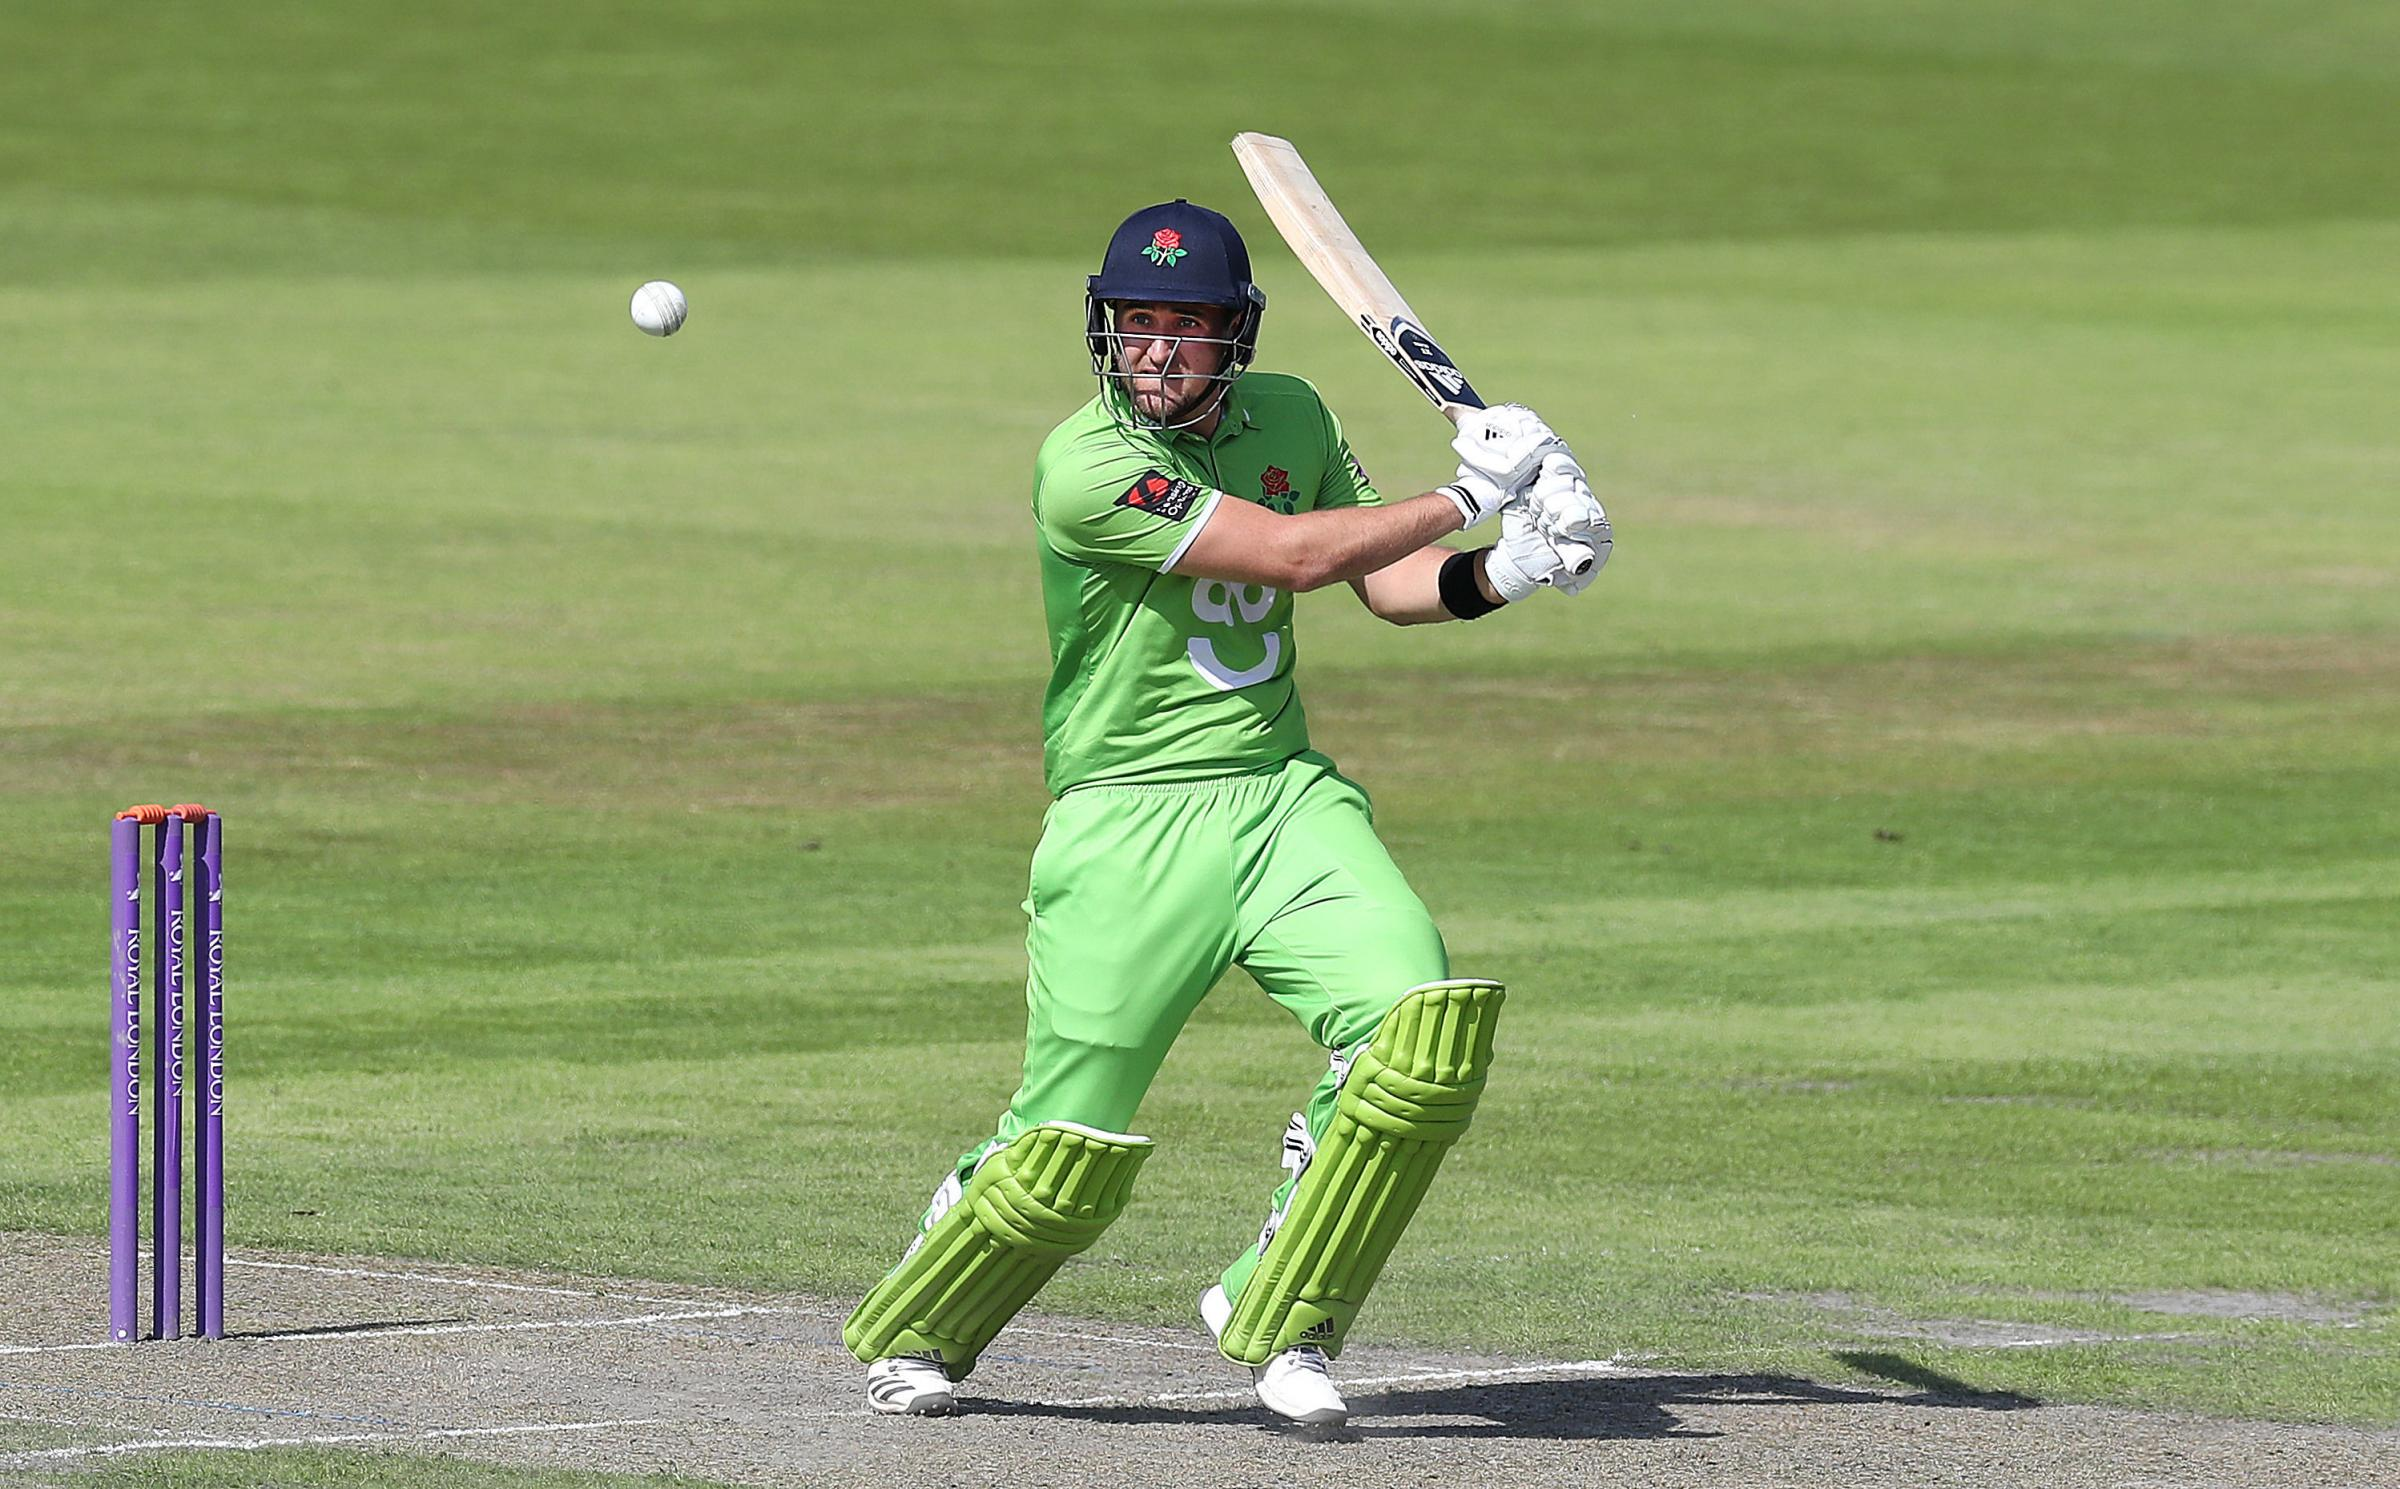 Liam Livingstone has struck three half-centuries with the Kings